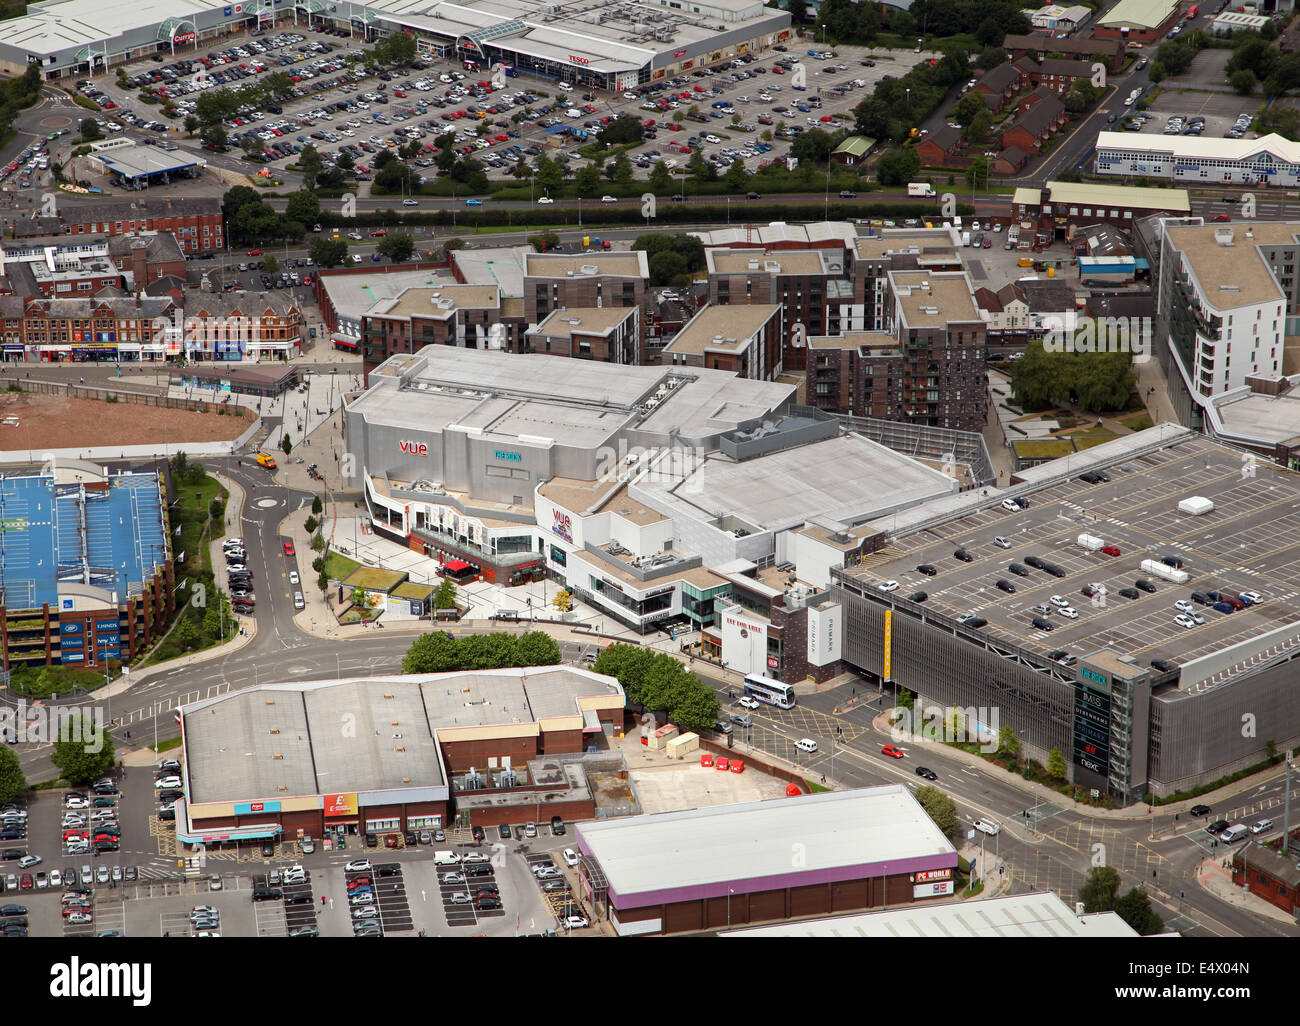 aerial view of The Rock Shopping and Leisure Complex in Bury, Lancashire, UK - Stock Image